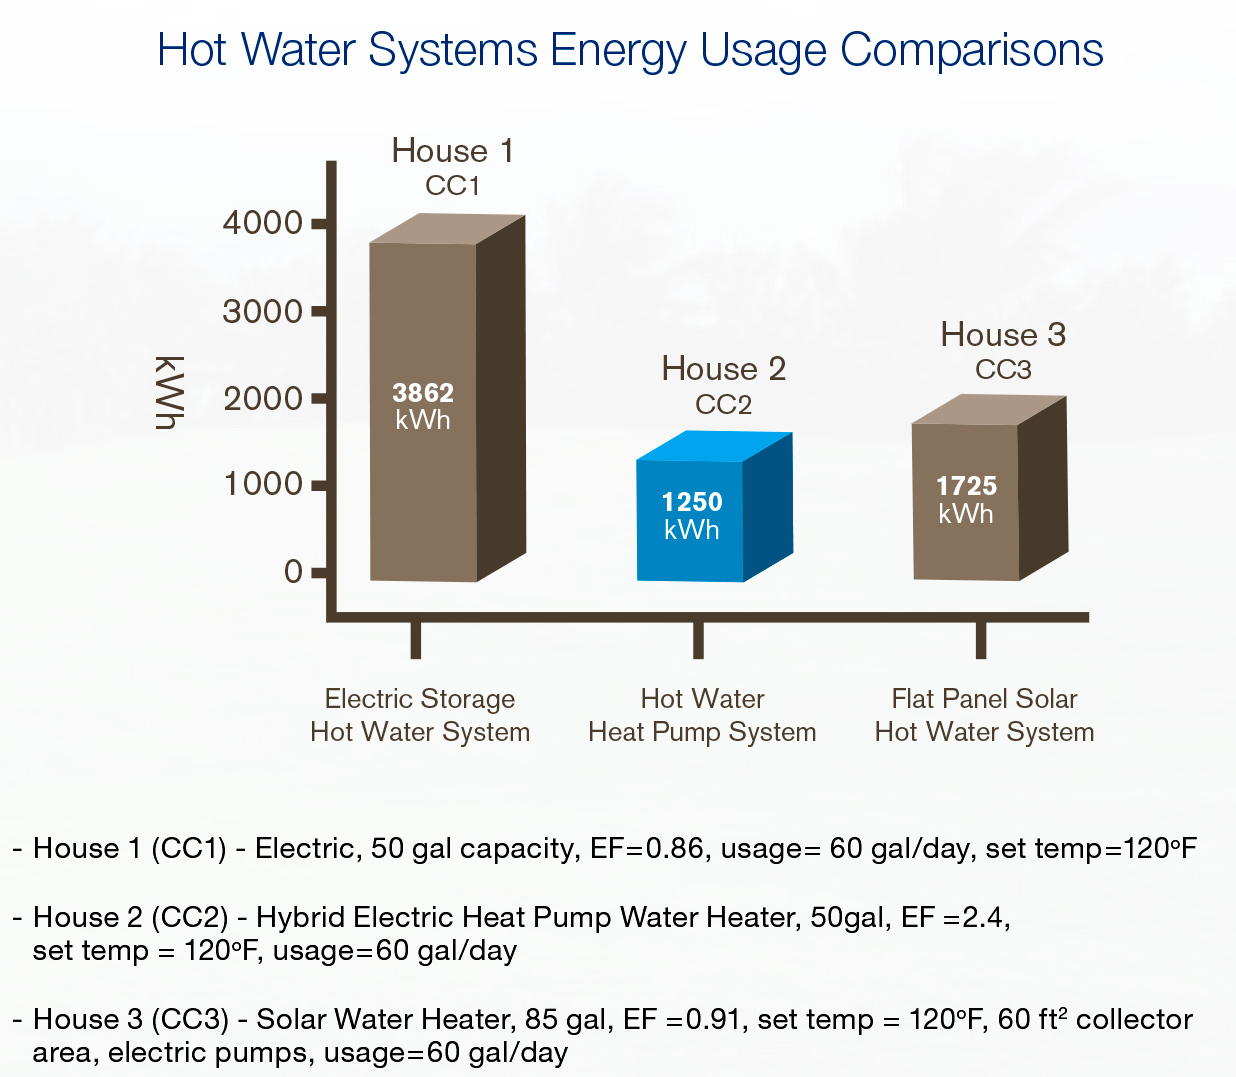 sanden-solar-hot-water-comparison